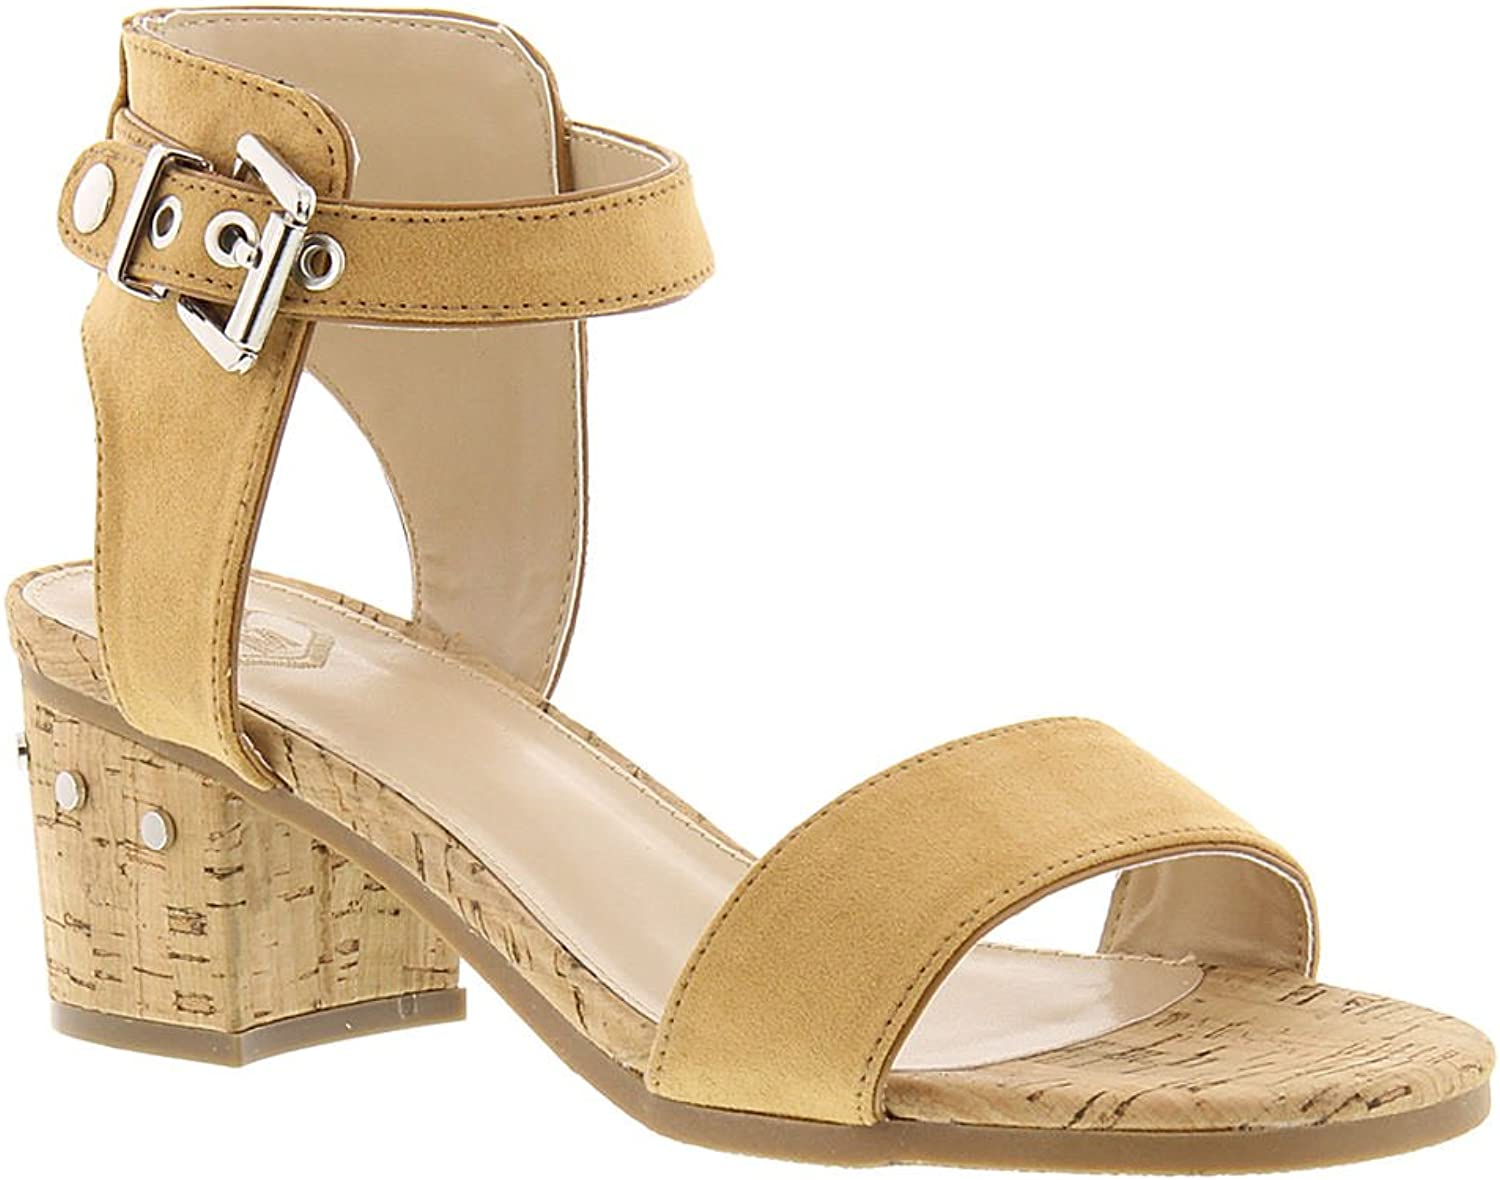 Madeline Women's Glow Wedge Sandal